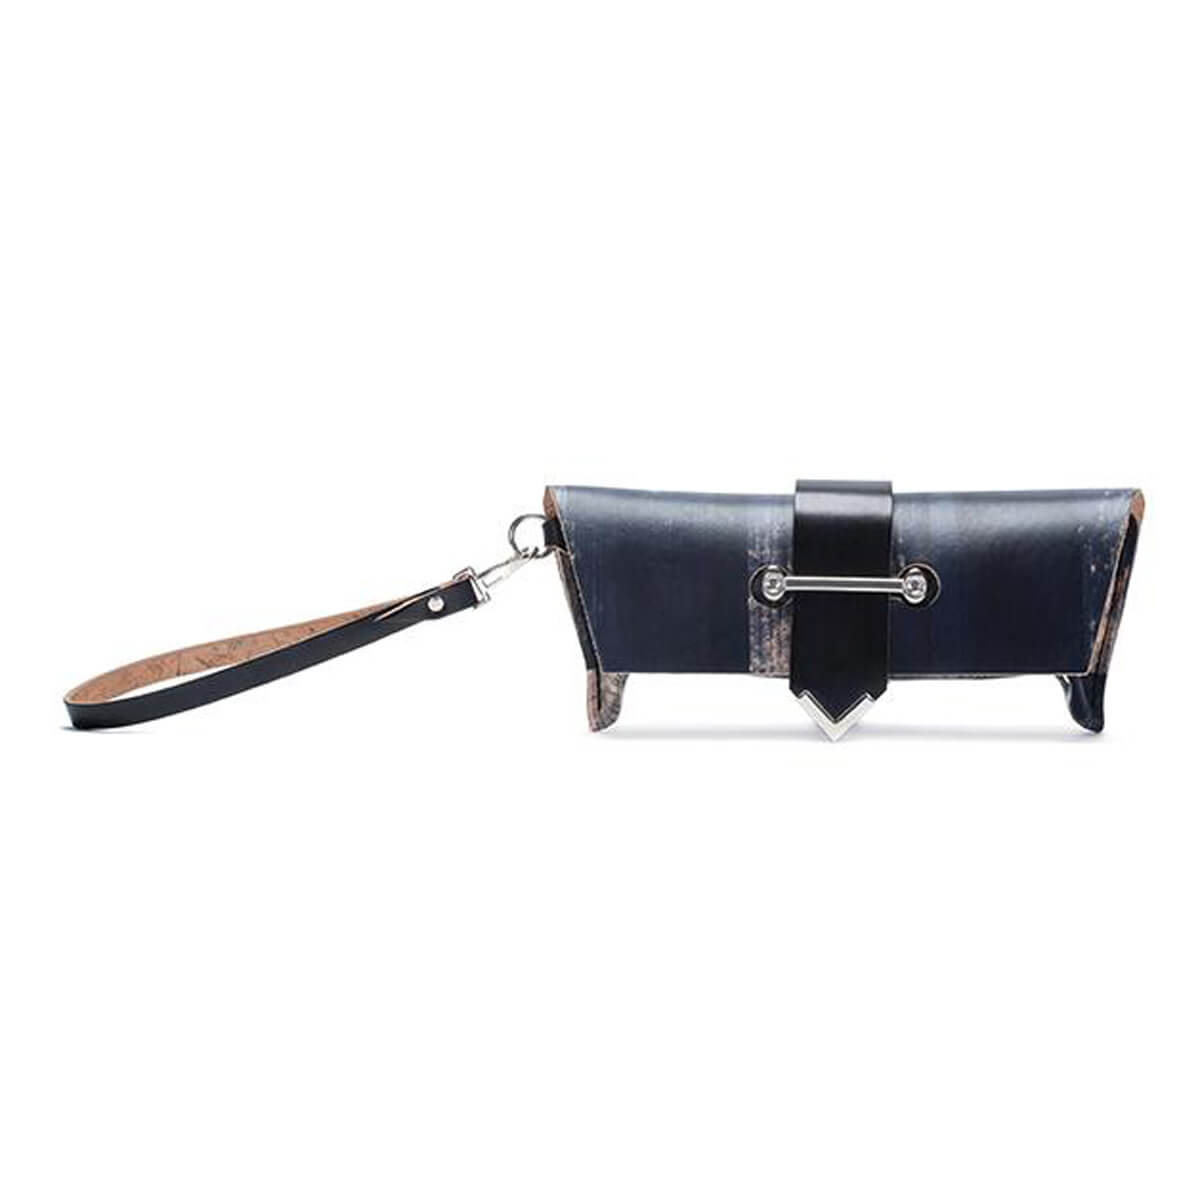 Fiveleft Leather handmade leather clutch bag - LEASHEDCLUTCH